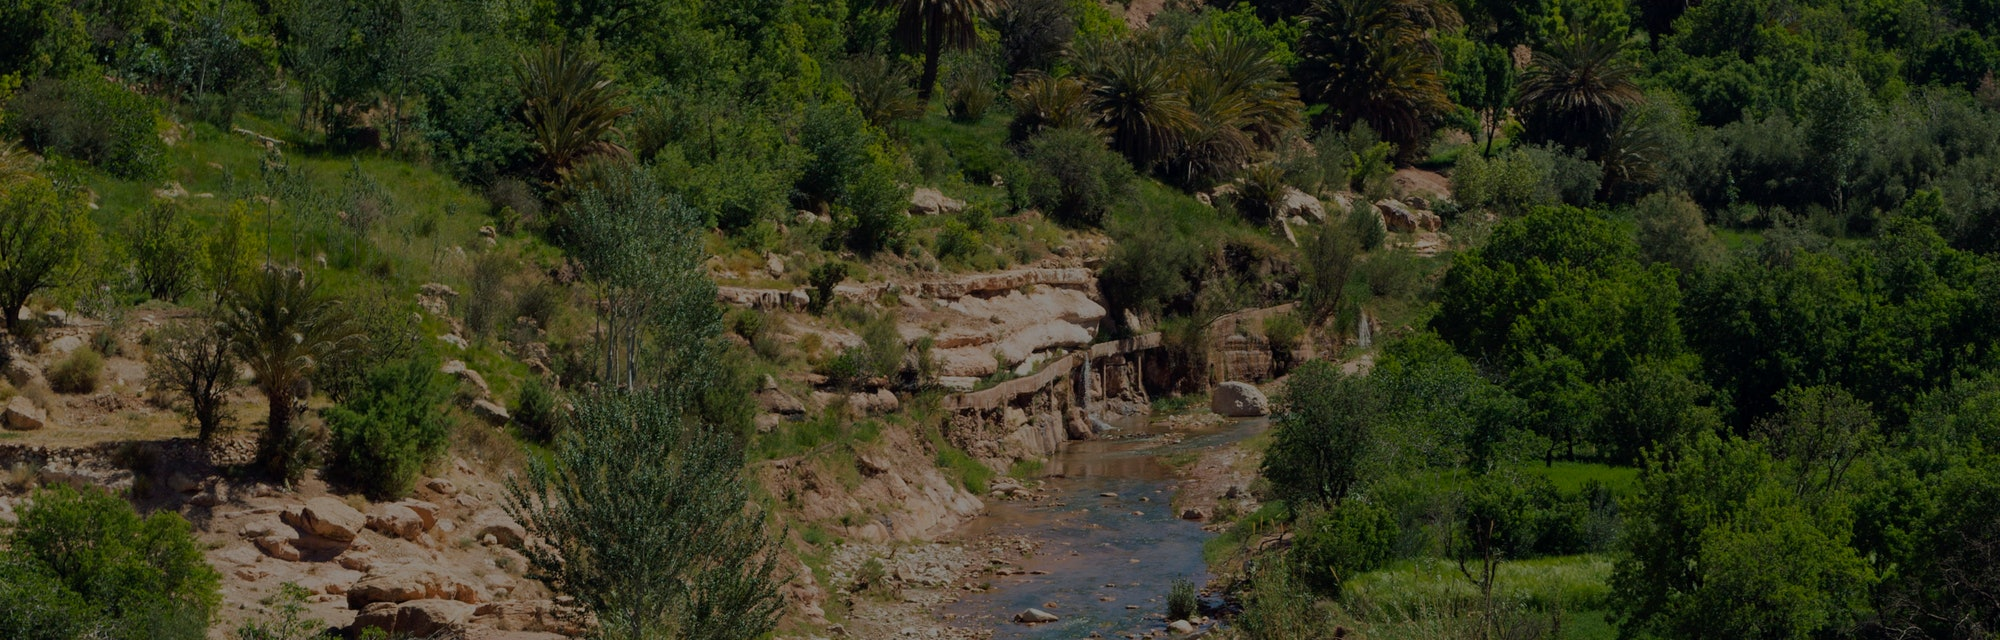 OUNILA VALLEY, MOROCCO - 23rd APRIL 2016 - The Oued (River) Ounila running through the the heart of ...